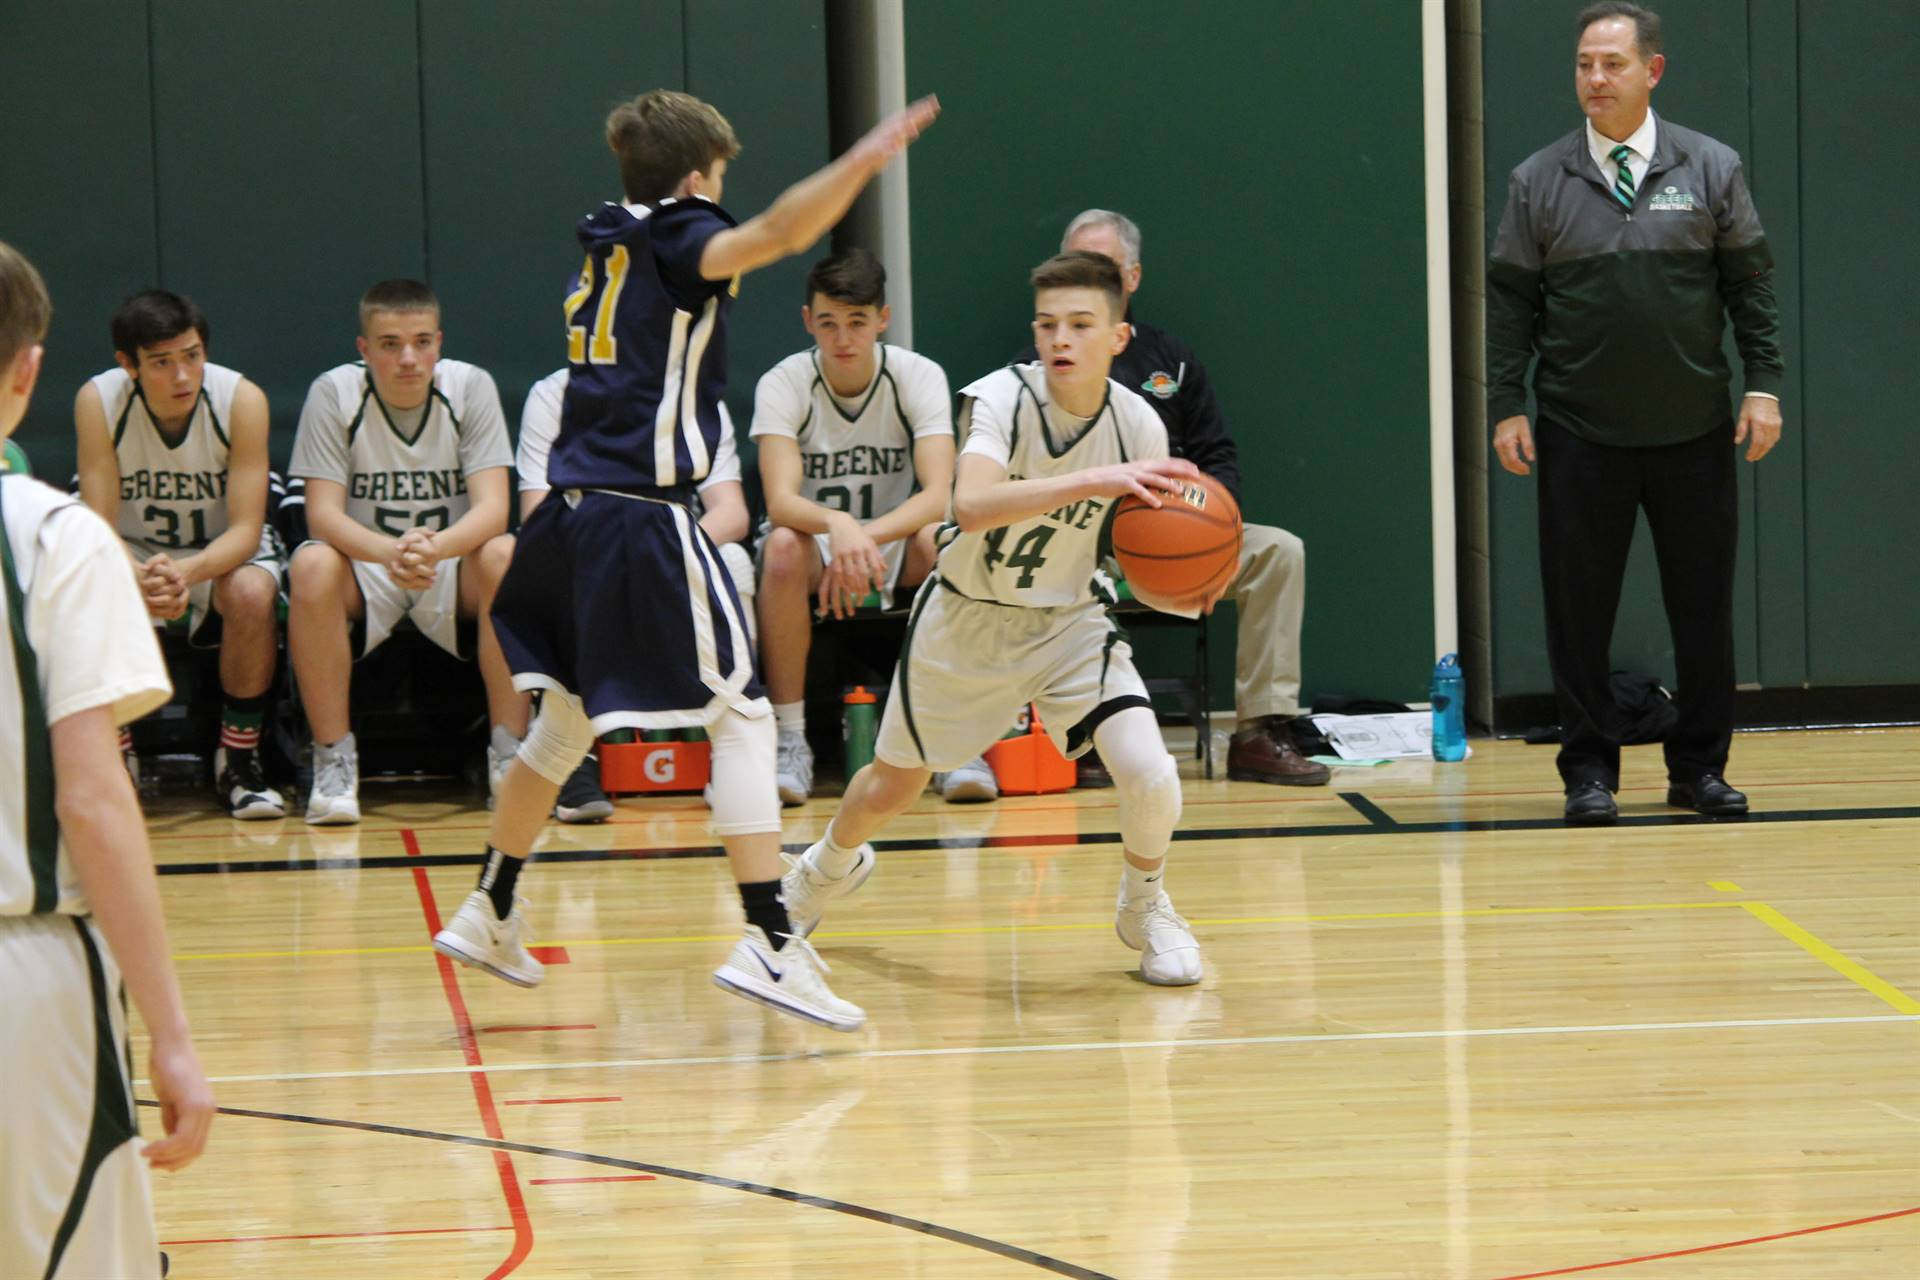 8th grade boy passing a basketball during a game